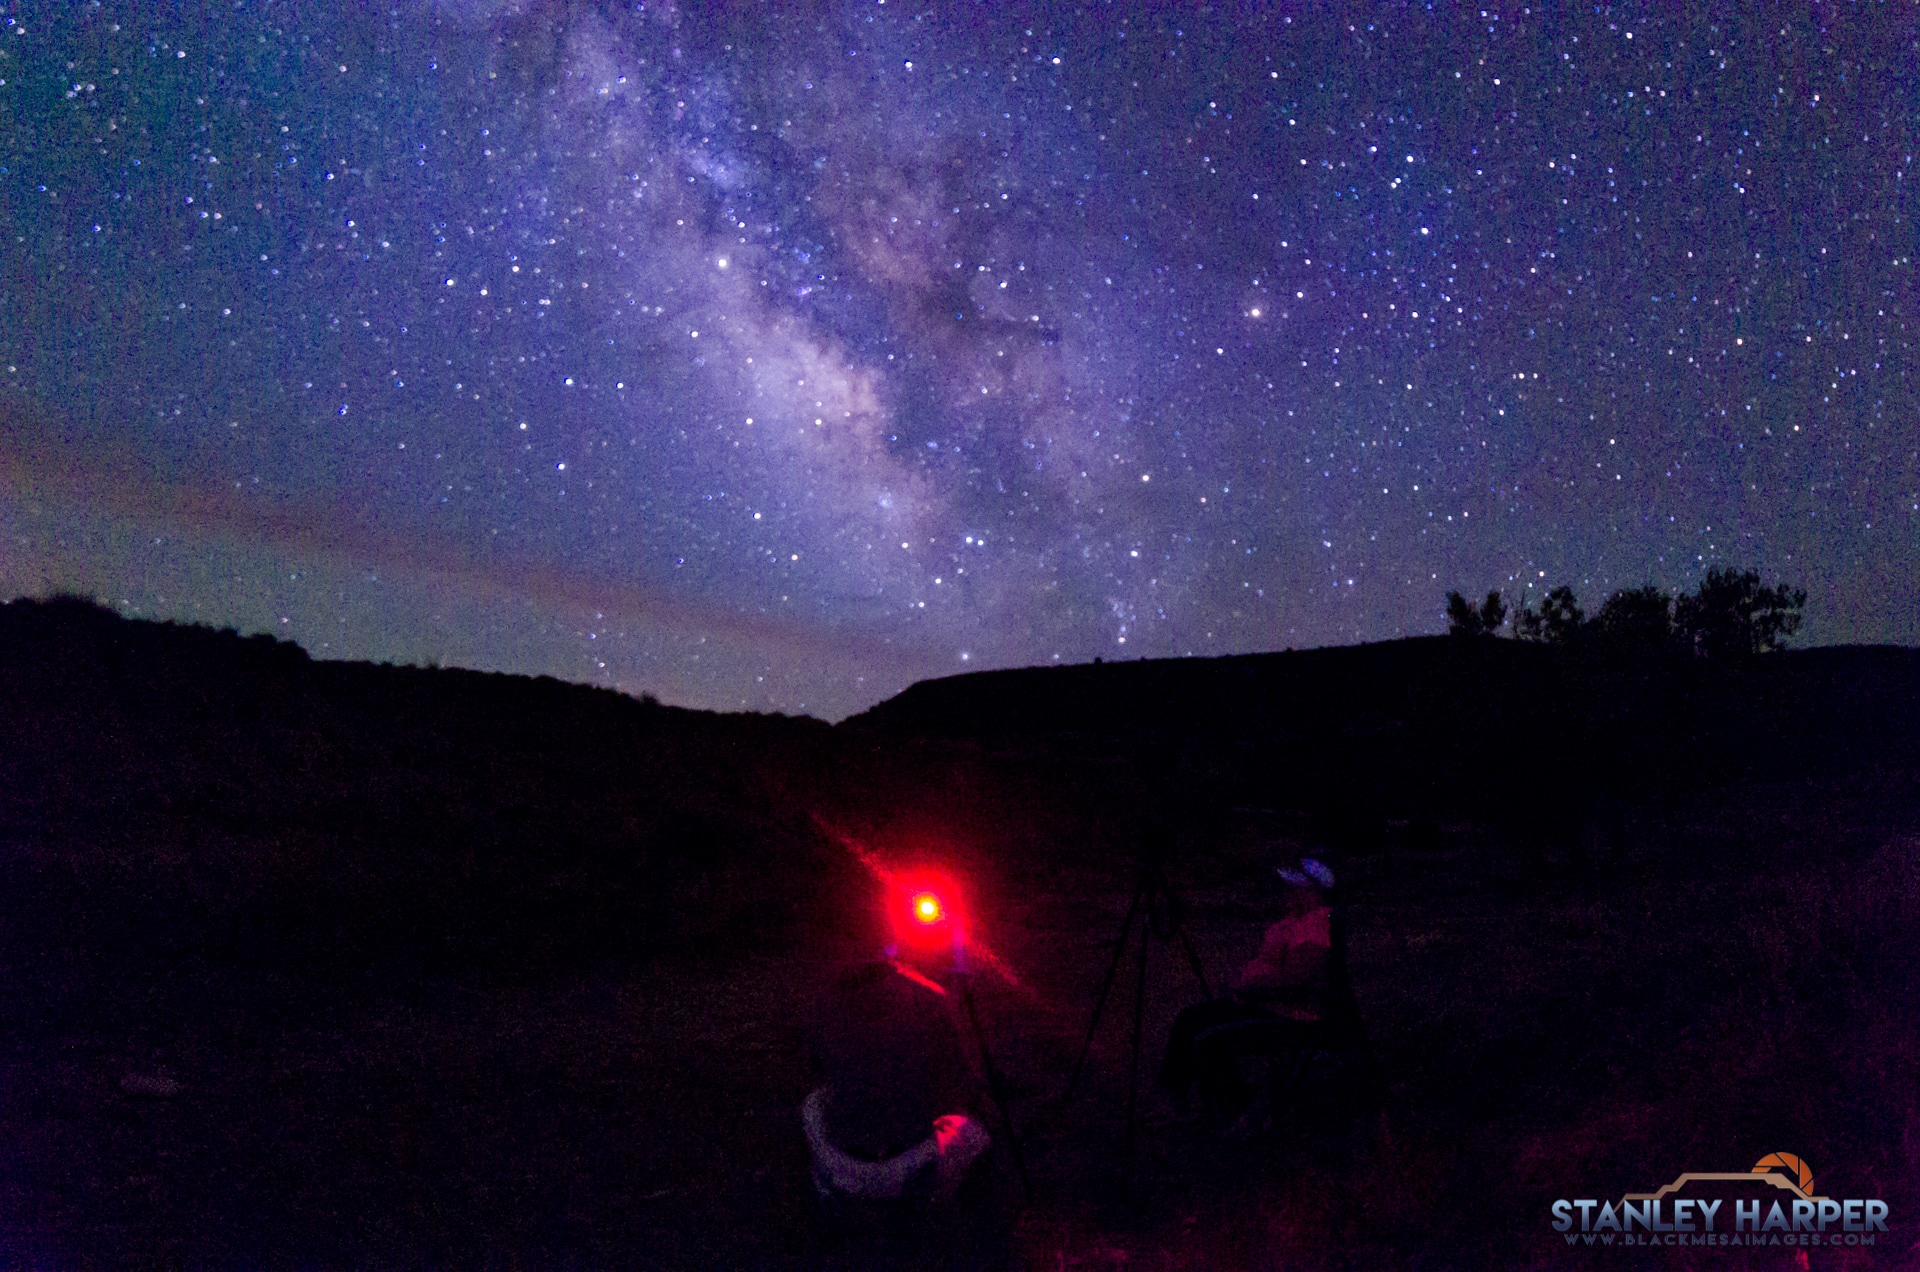 Milky Way Photography For Beginners - Research, Location and